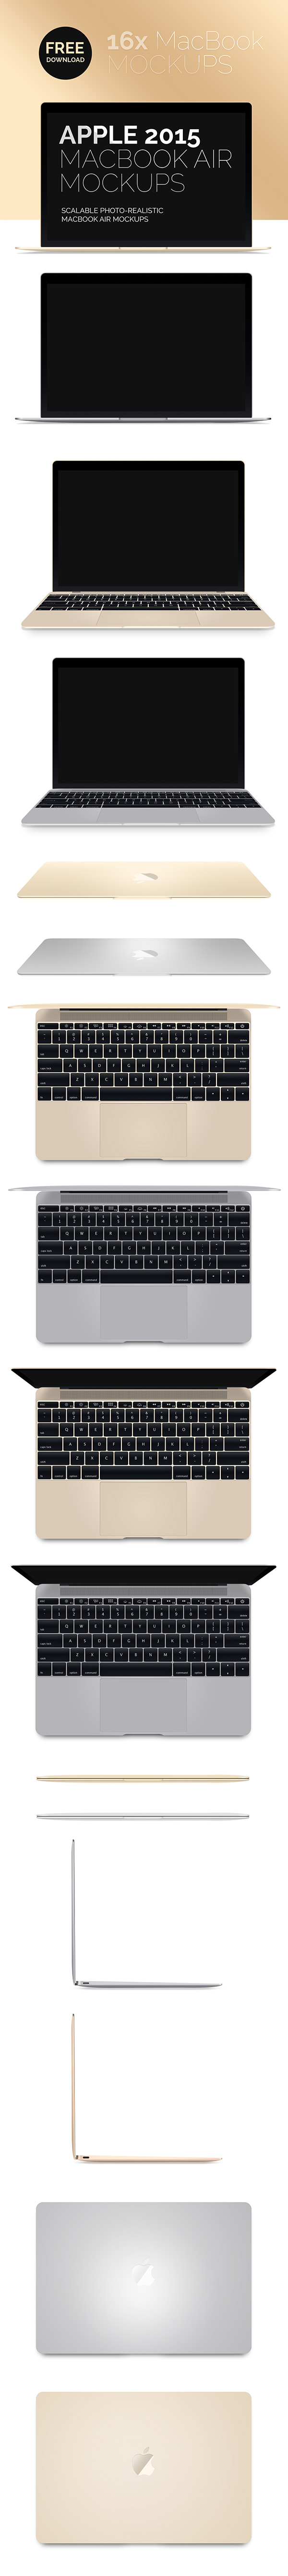 MacBook-Air-Mockup-600